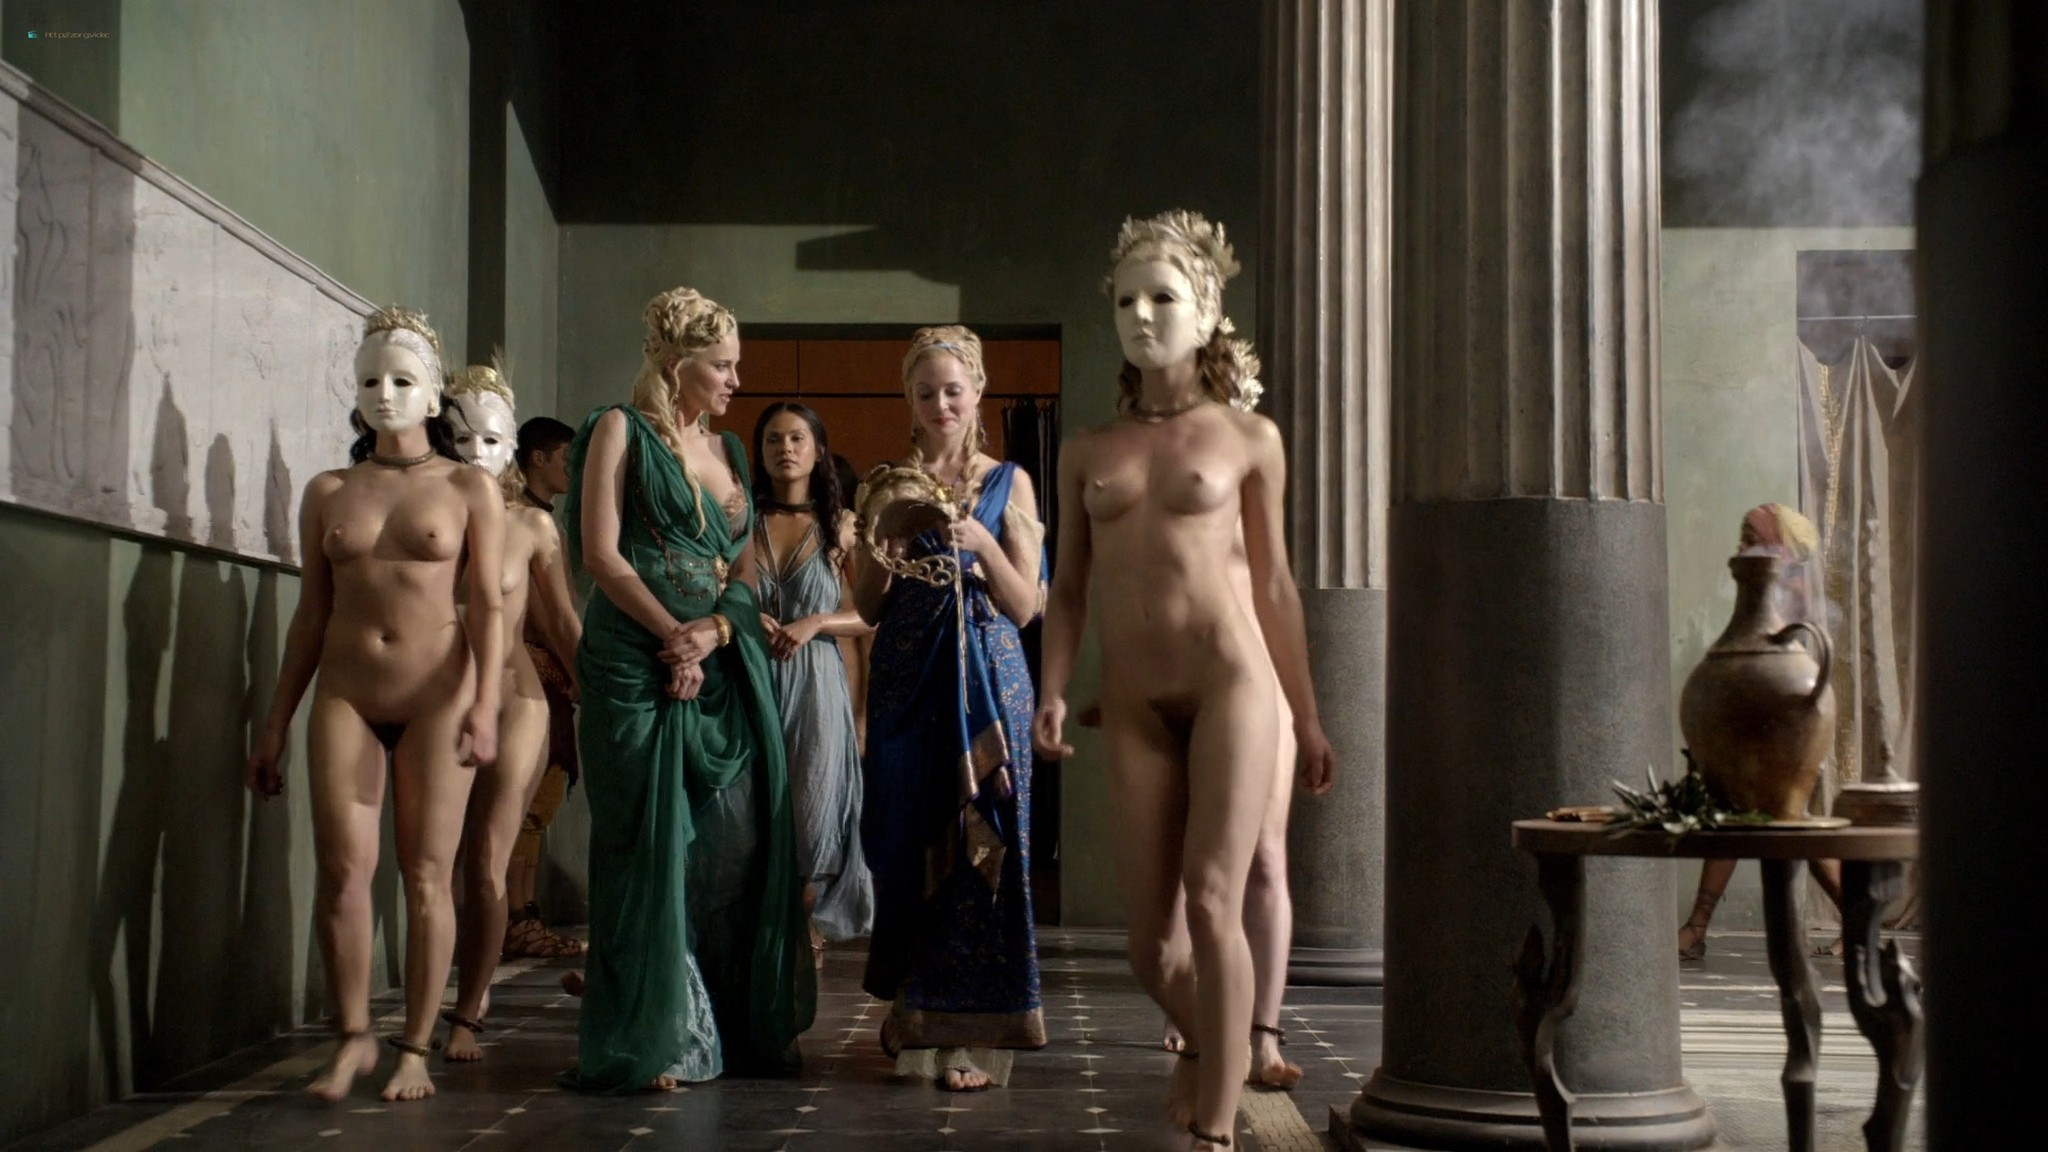 Lucy Lawless nude Katrina Law full-frontal Viva Bianca, etc nude - Spartacus (2010) Whore s1e9 HD 1080p BluRay (17)